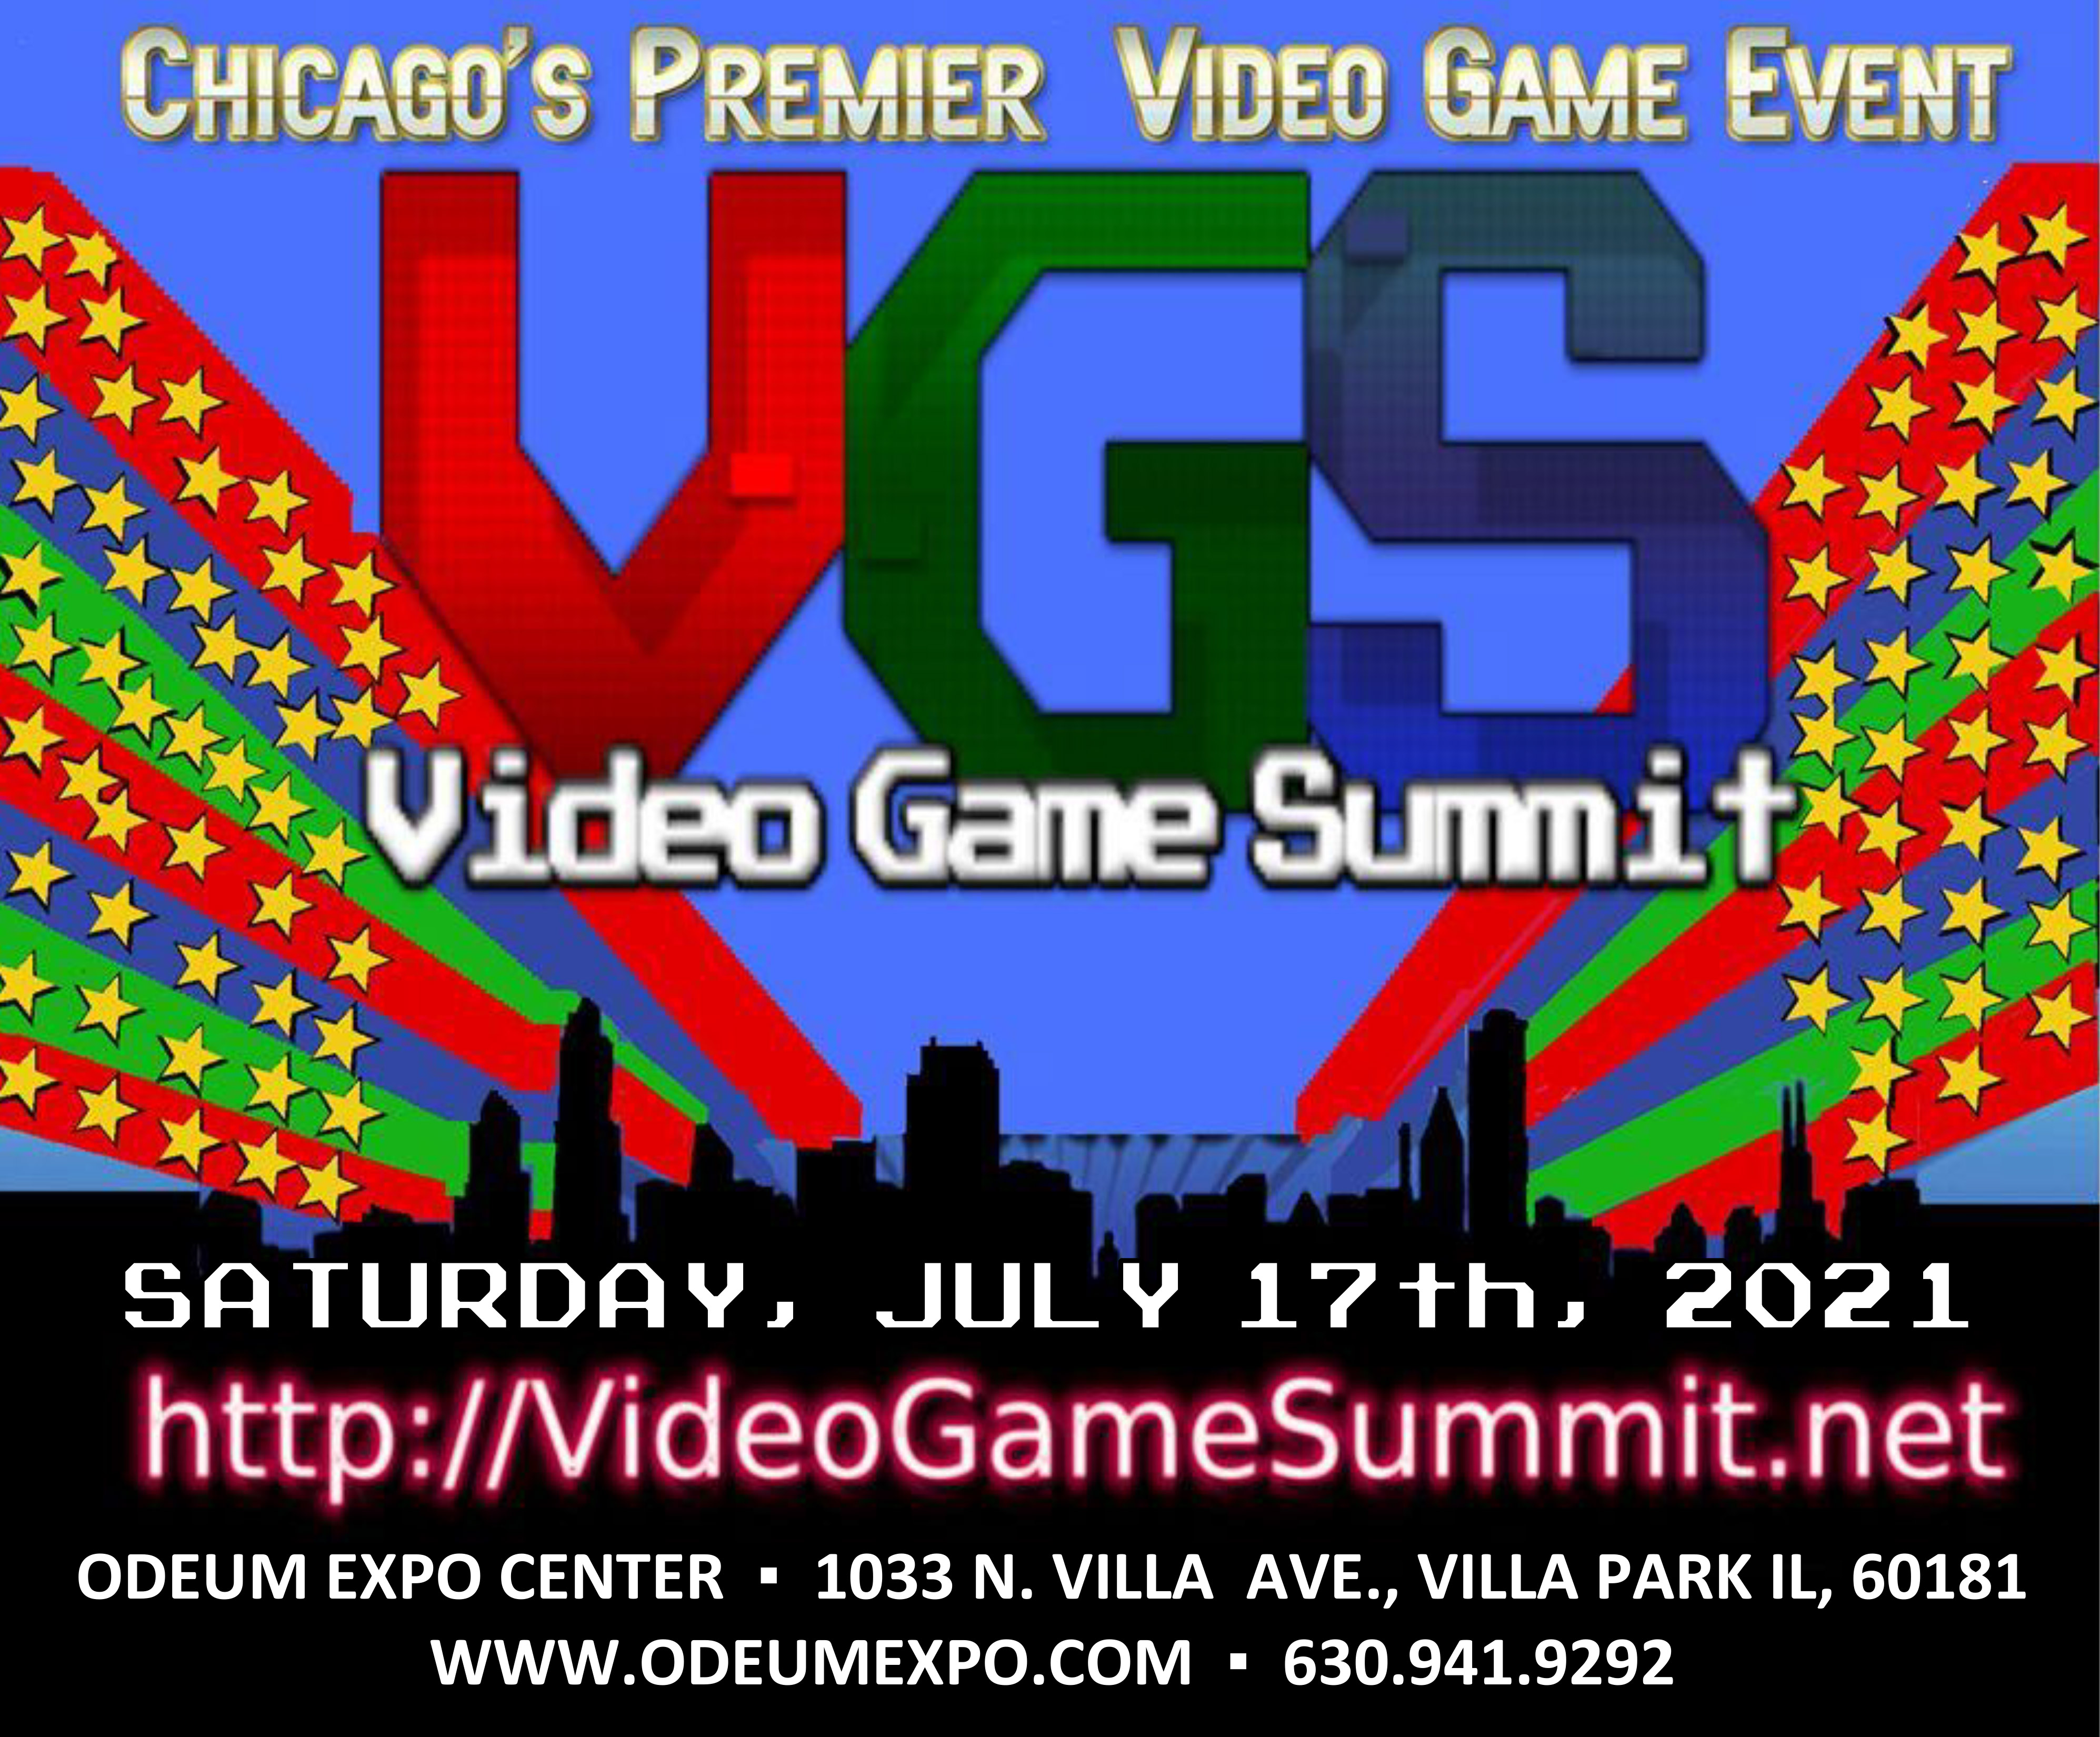 Logo for the Chicago Video Game Summit on July 17, 2021 at the Odeum Expo Center in Villa Park Illinois